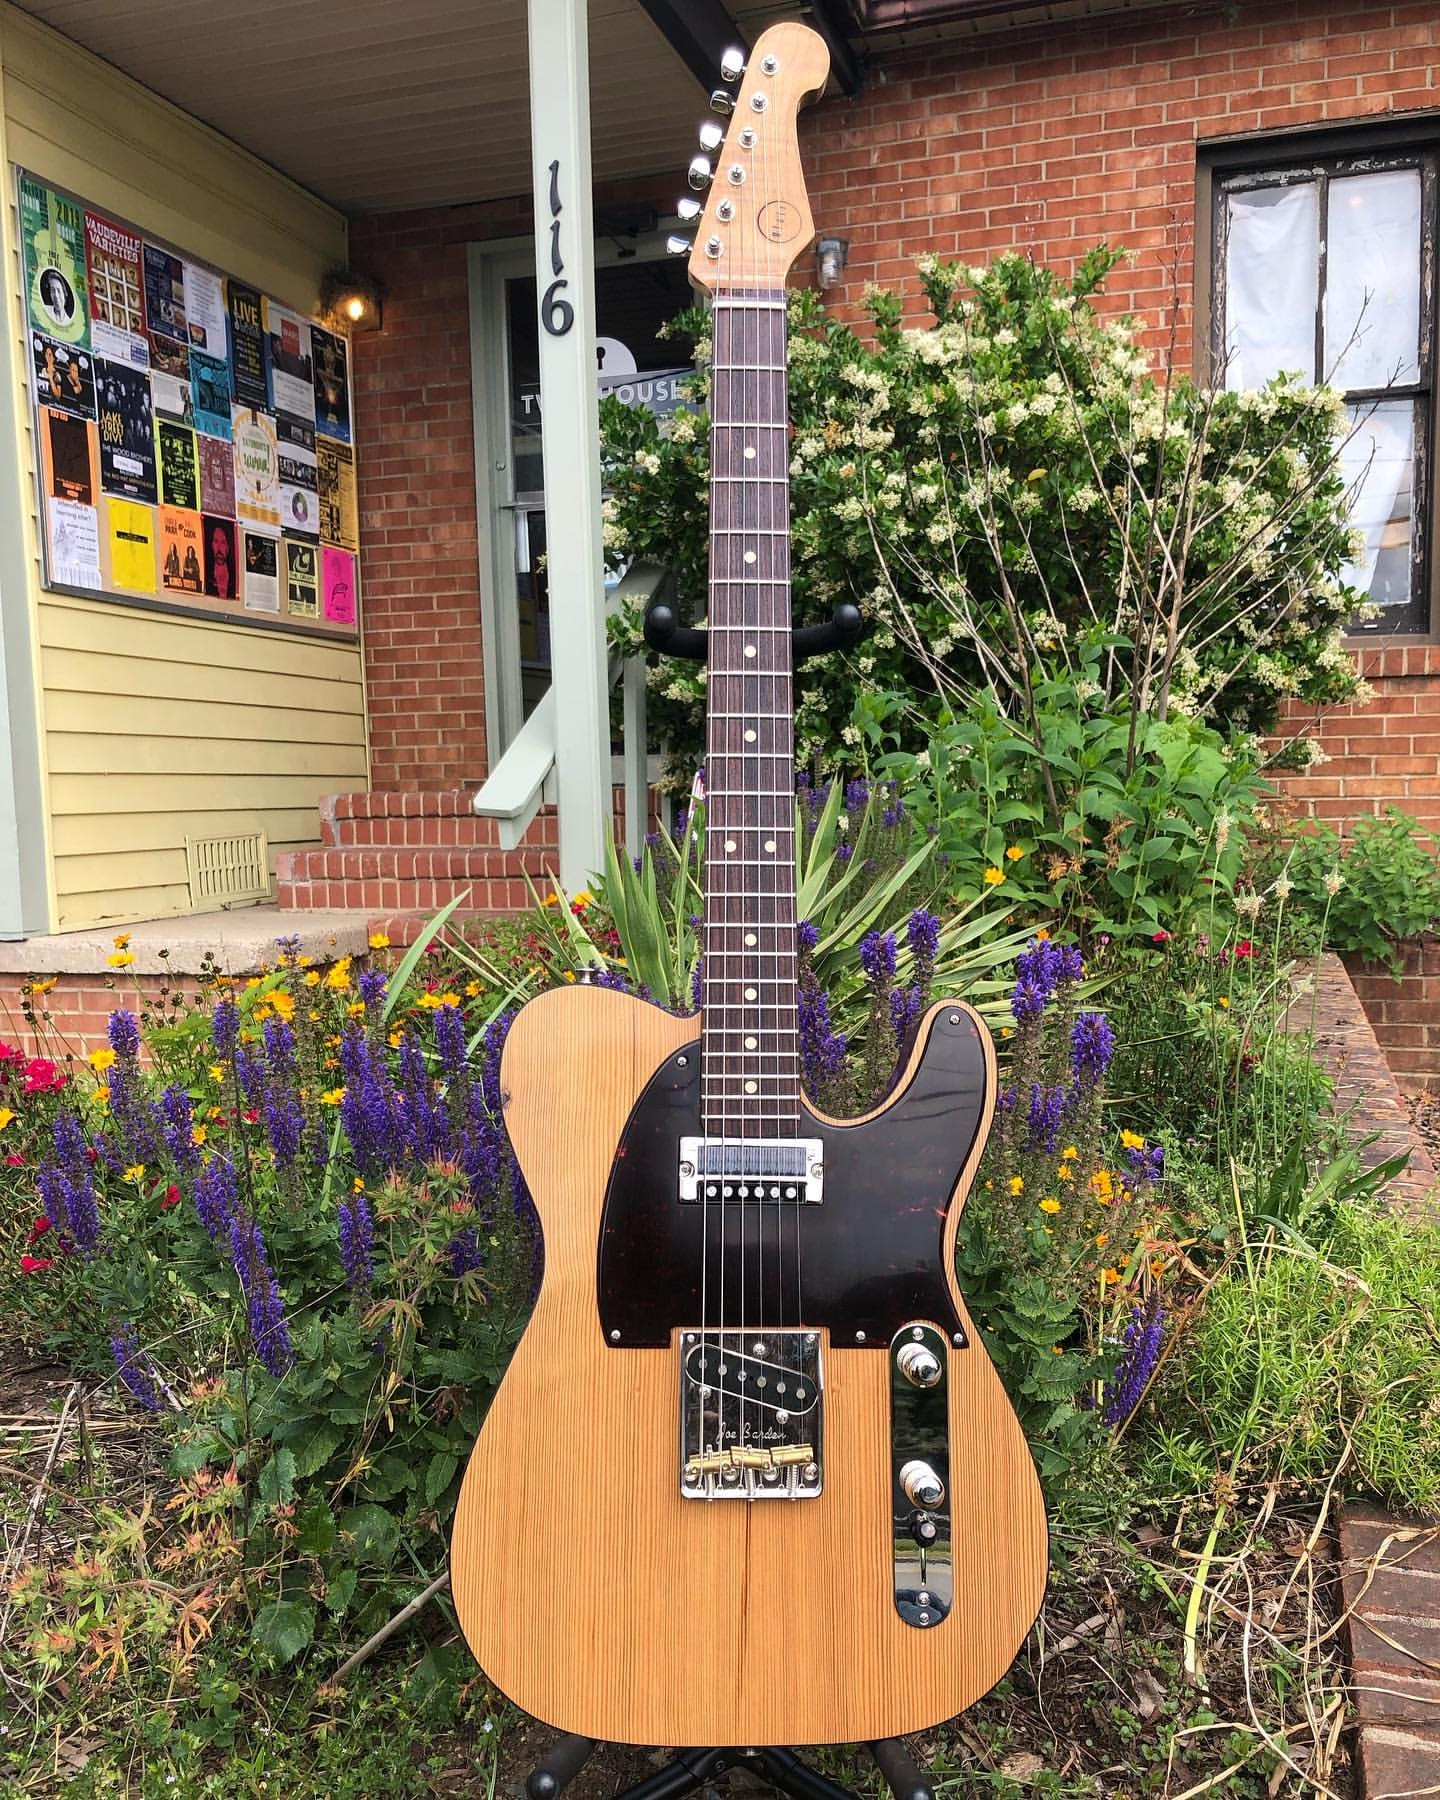 Blair Instruments delivered this beautiful Toasted Tele to the shop last night Here s the specs Torrified Poplar back Torrified Curly Maple neck 100